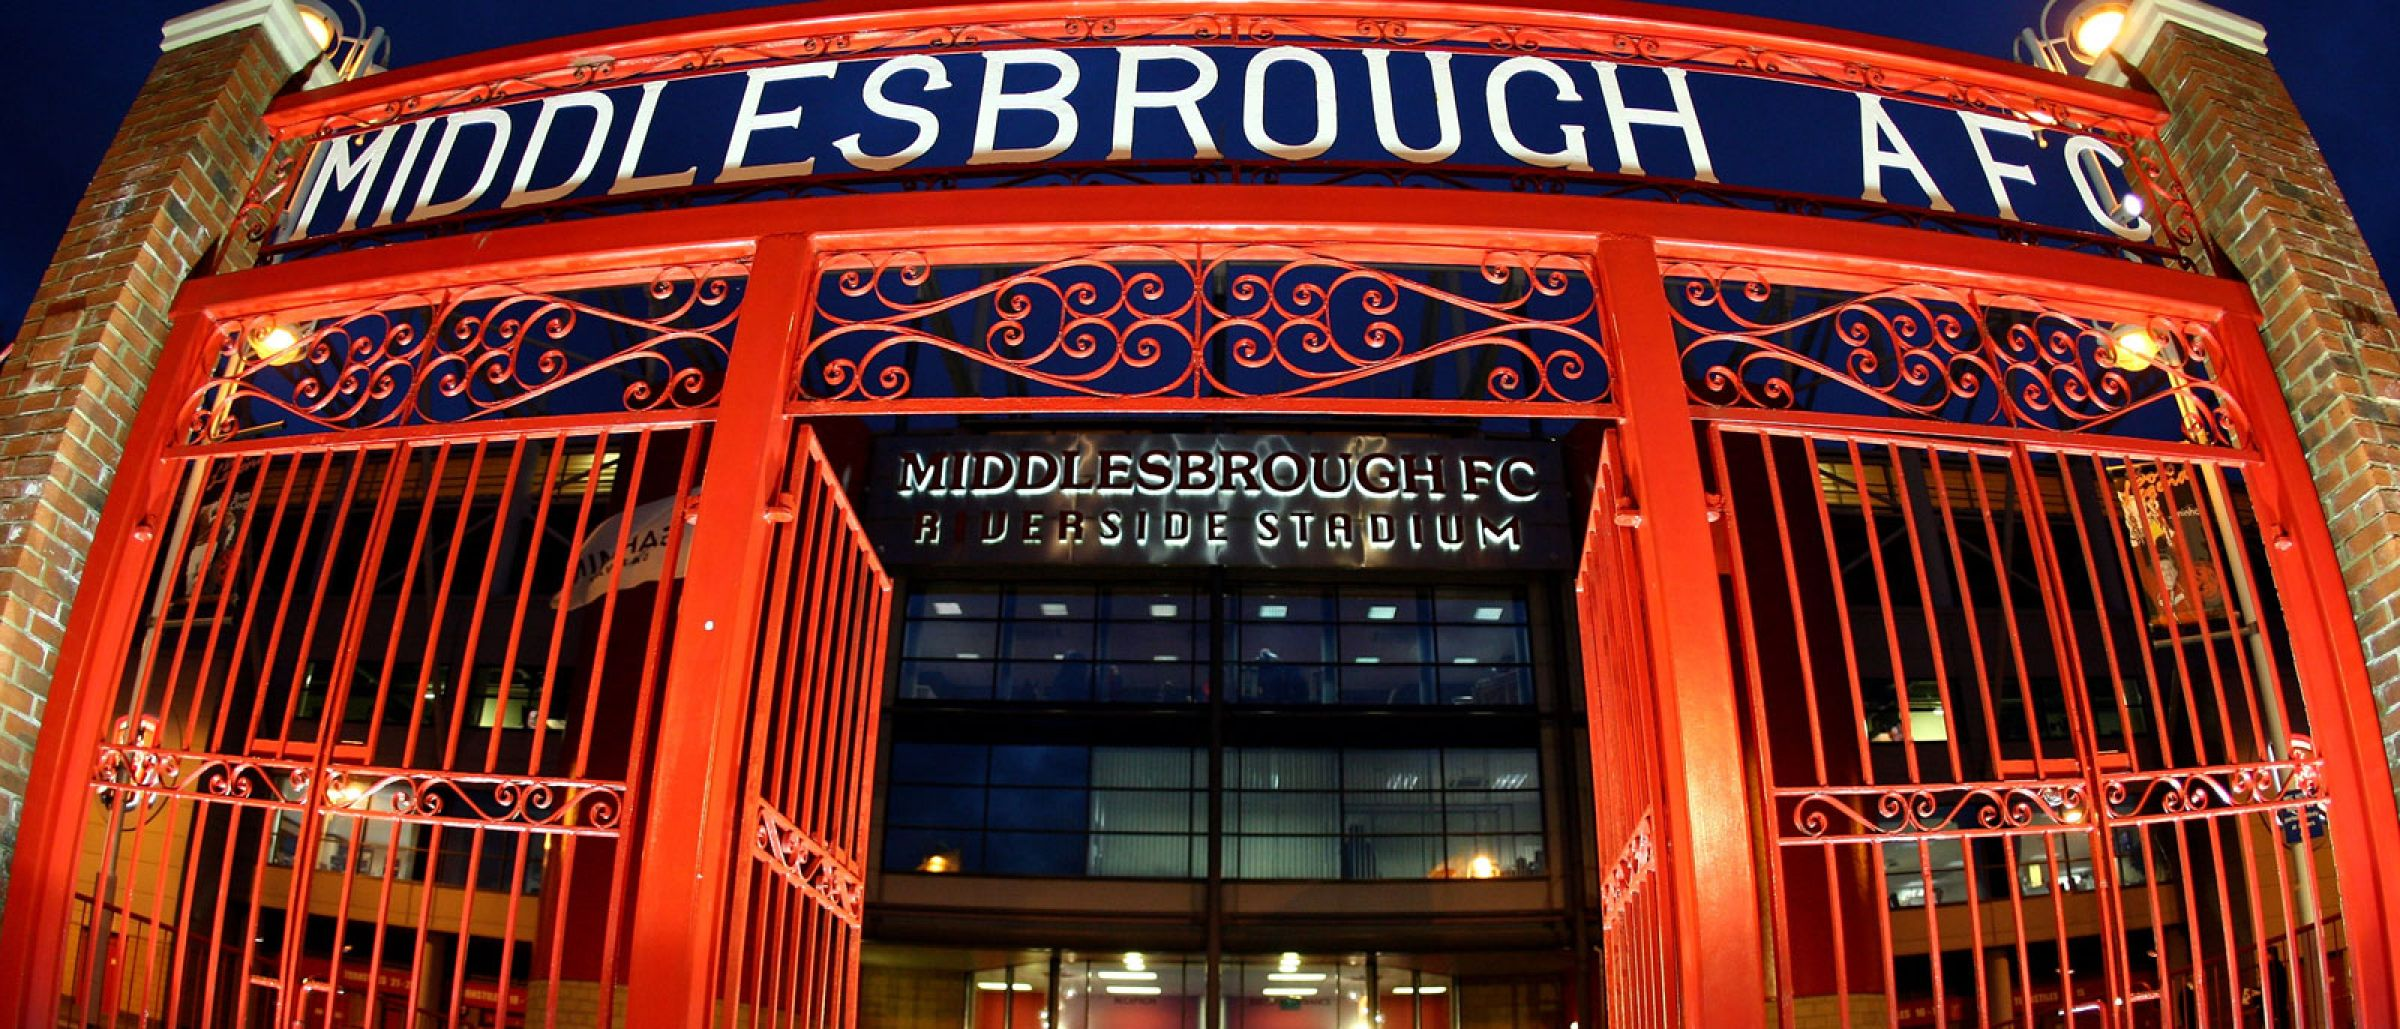 Boro S Grounds Middlesbrough Fc